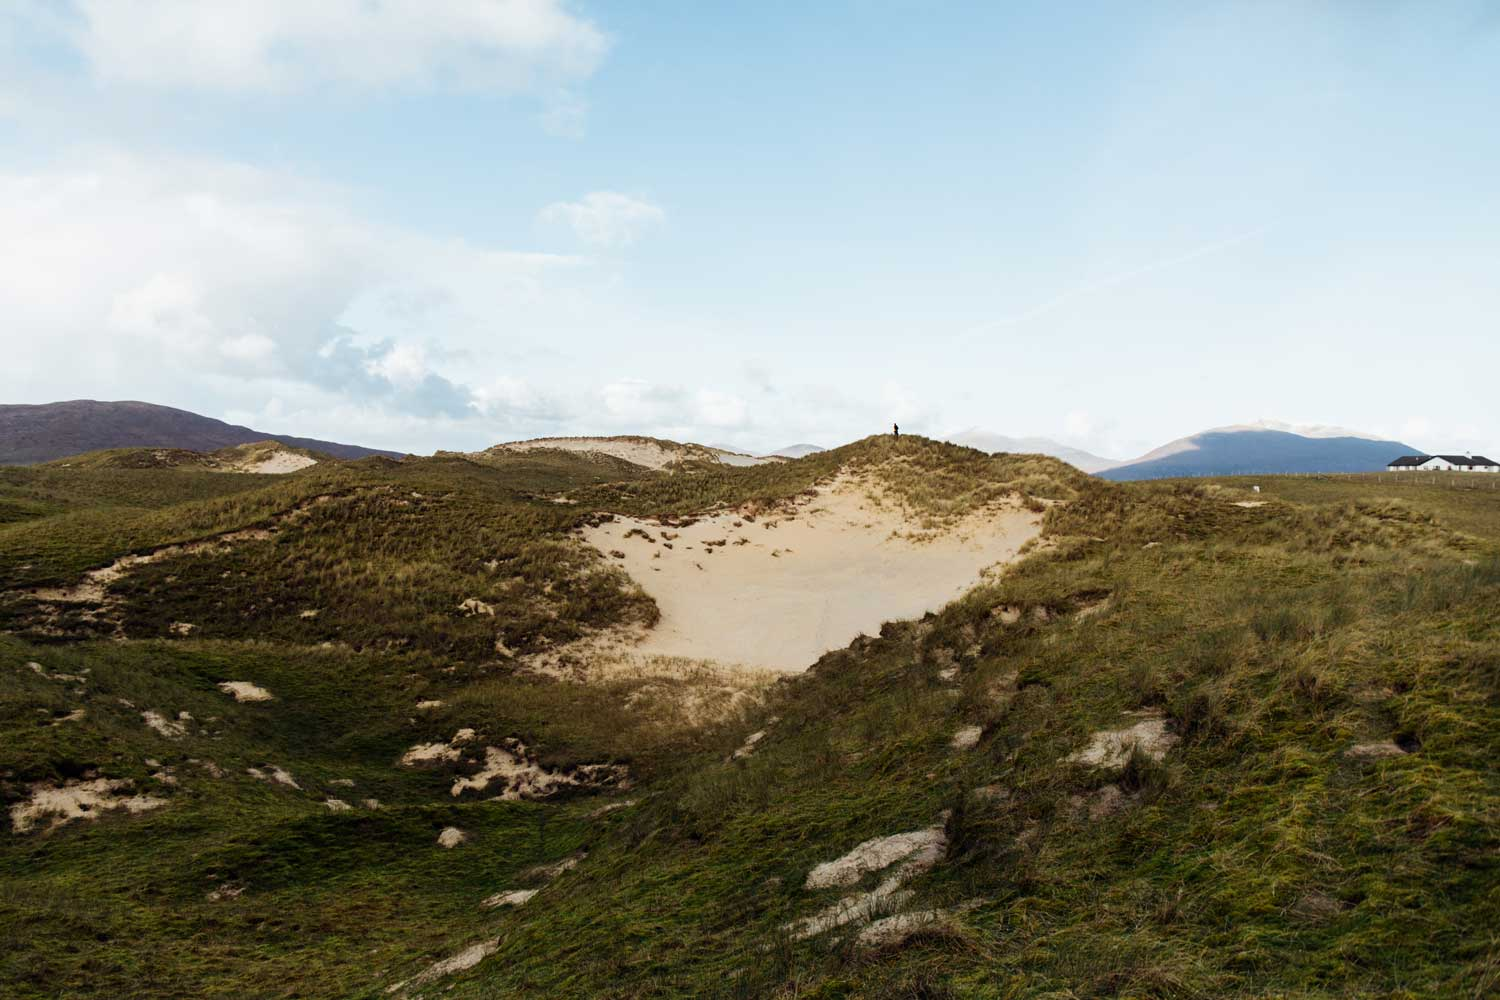 dune plage sable blanc nord ecosse